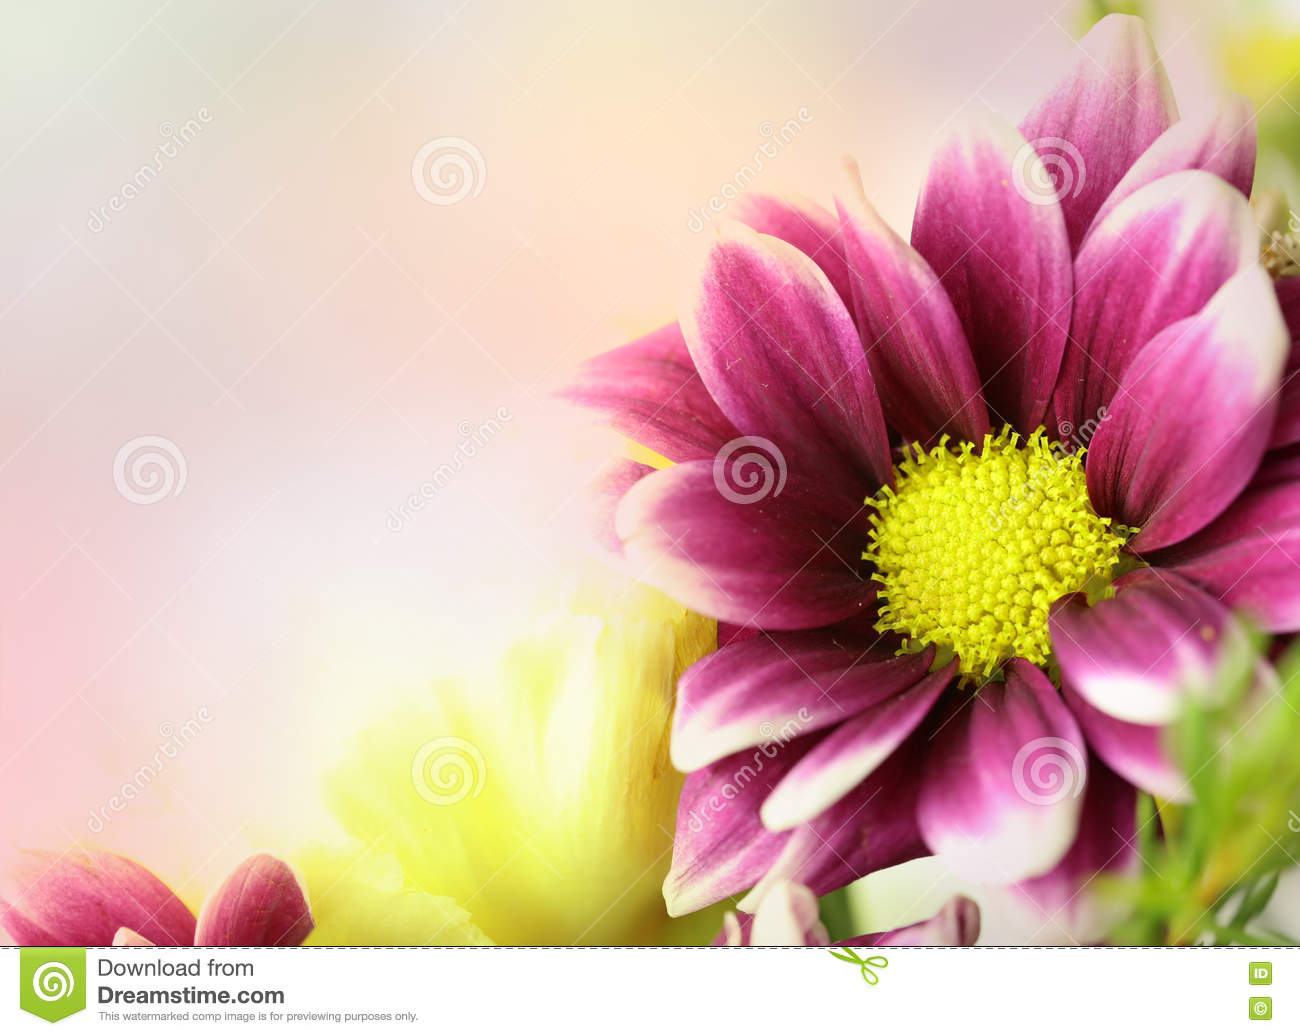 Download Fresh flowers. stock photo. Image of flowers, cheerful - 71199796